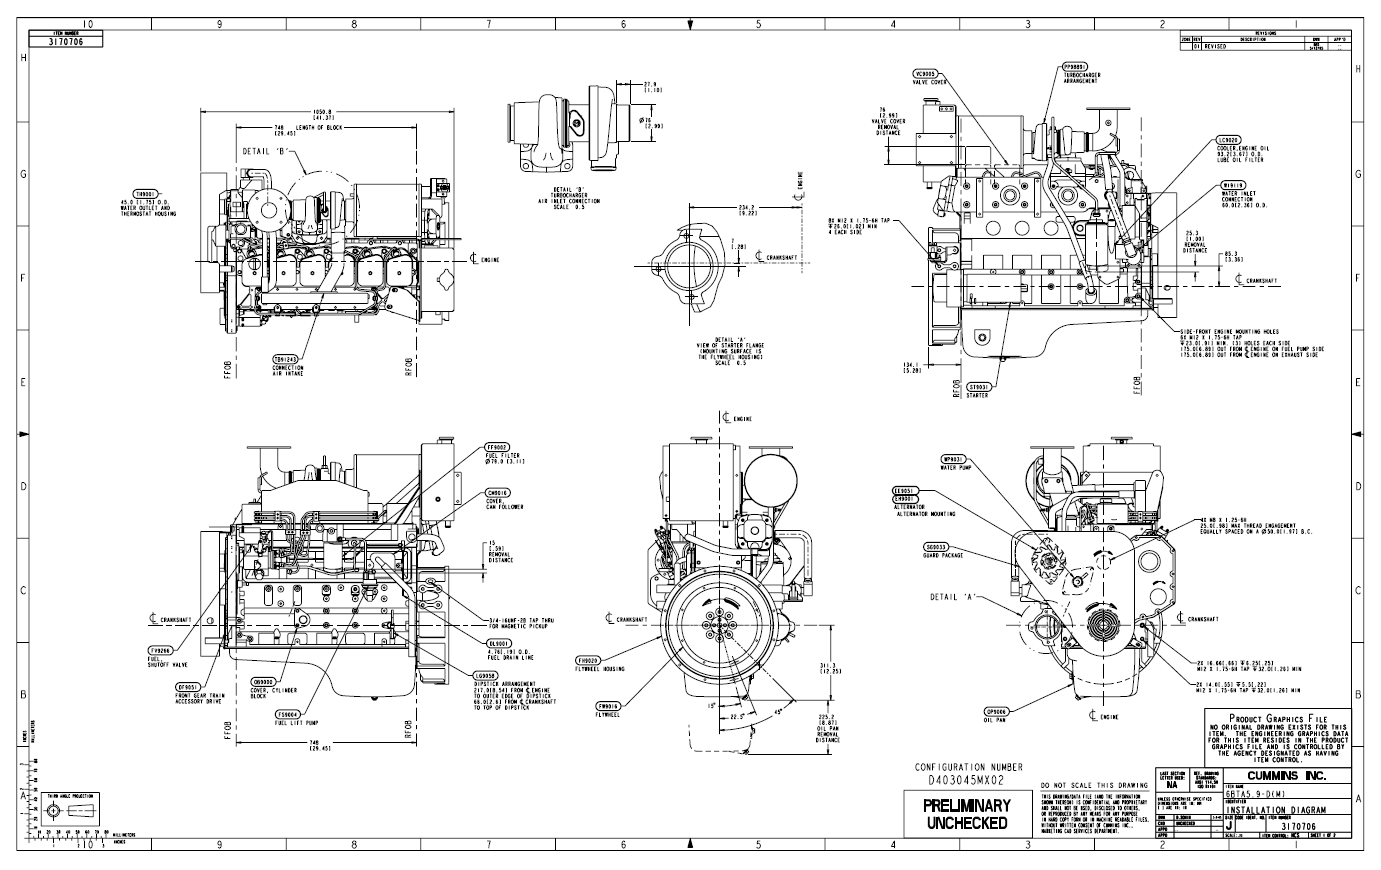 6ivva  pression 1990 Wave Runner Engine further Holding Bolts Marine Diesel Engines besides Water In Hull Of Waverunner Easy Fix moreover 2012 Ford Focus Engine Diagram moreover Fuel Oil Treatment. on boat cooling system diagram